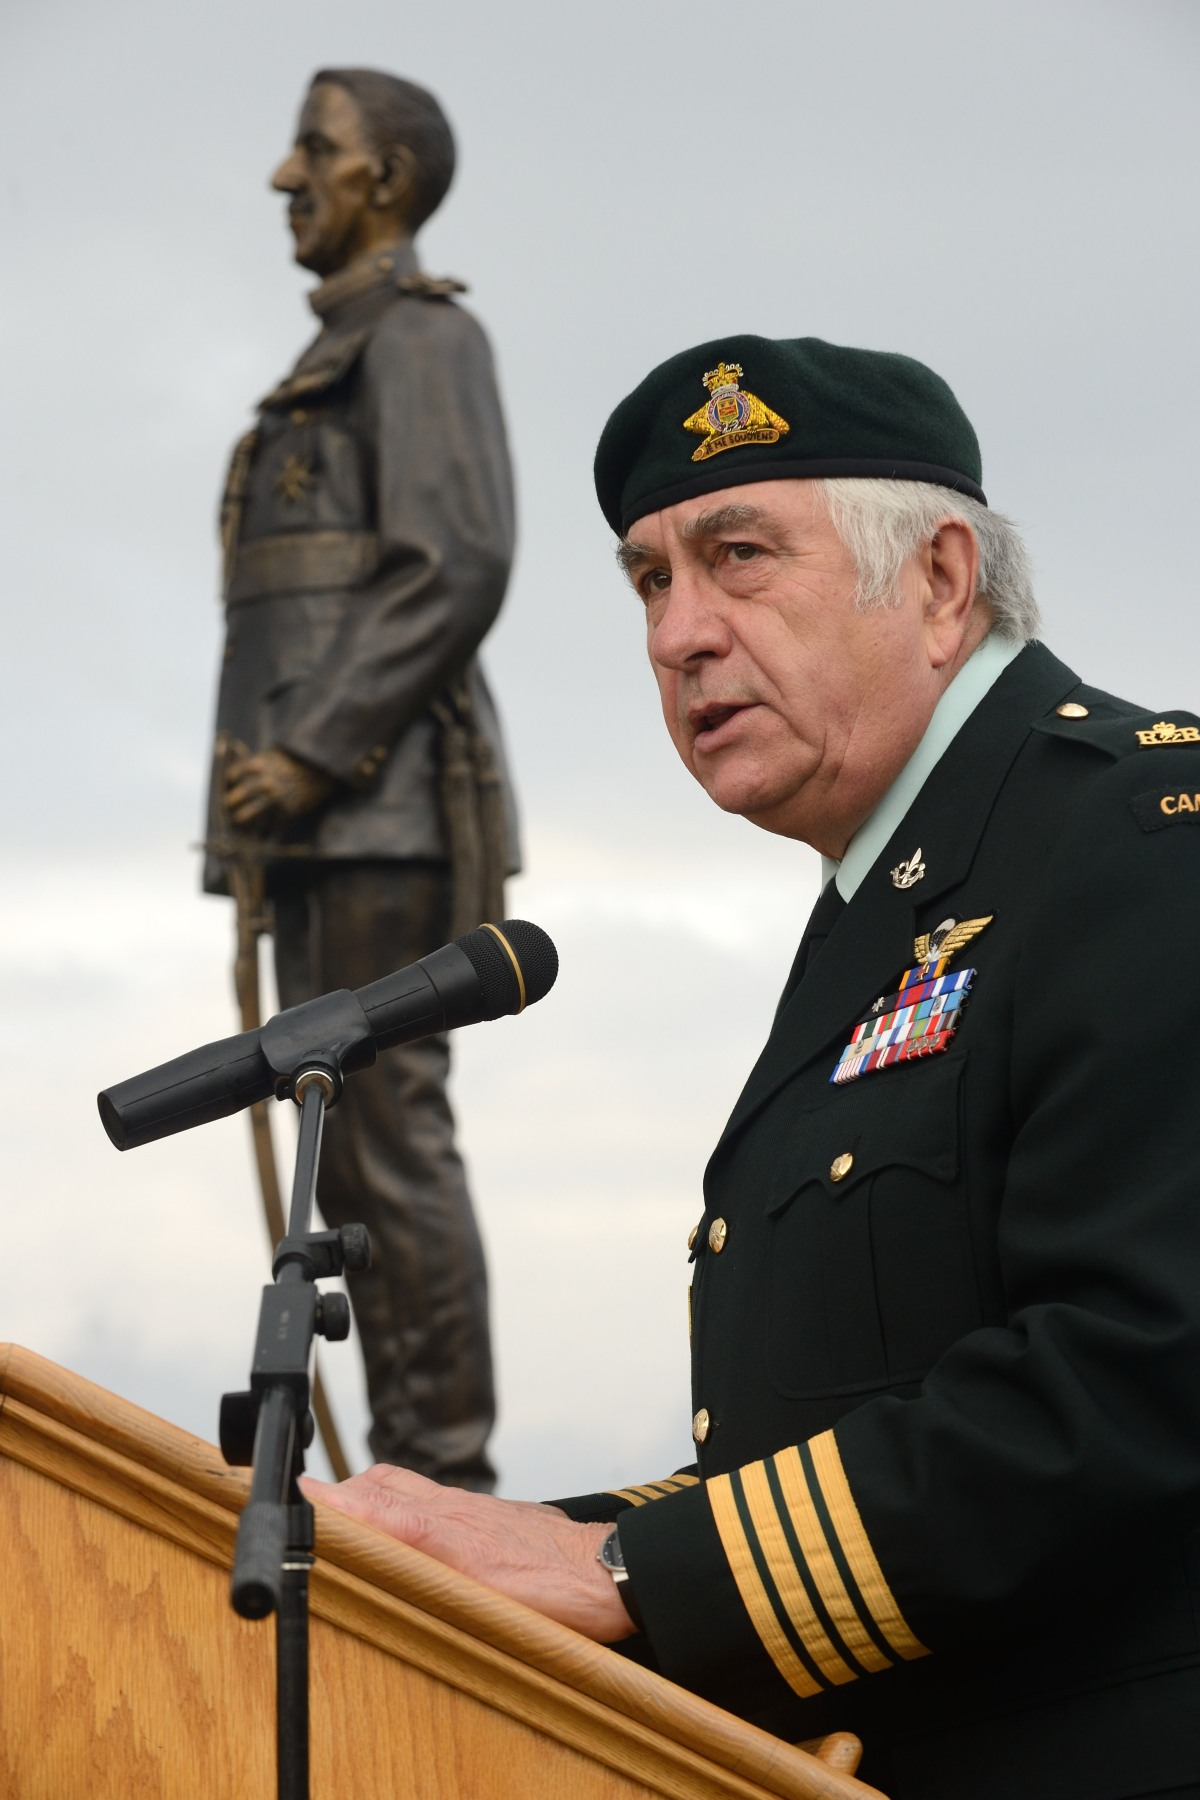 Major-General Forand also delivered remarks on this occasion.